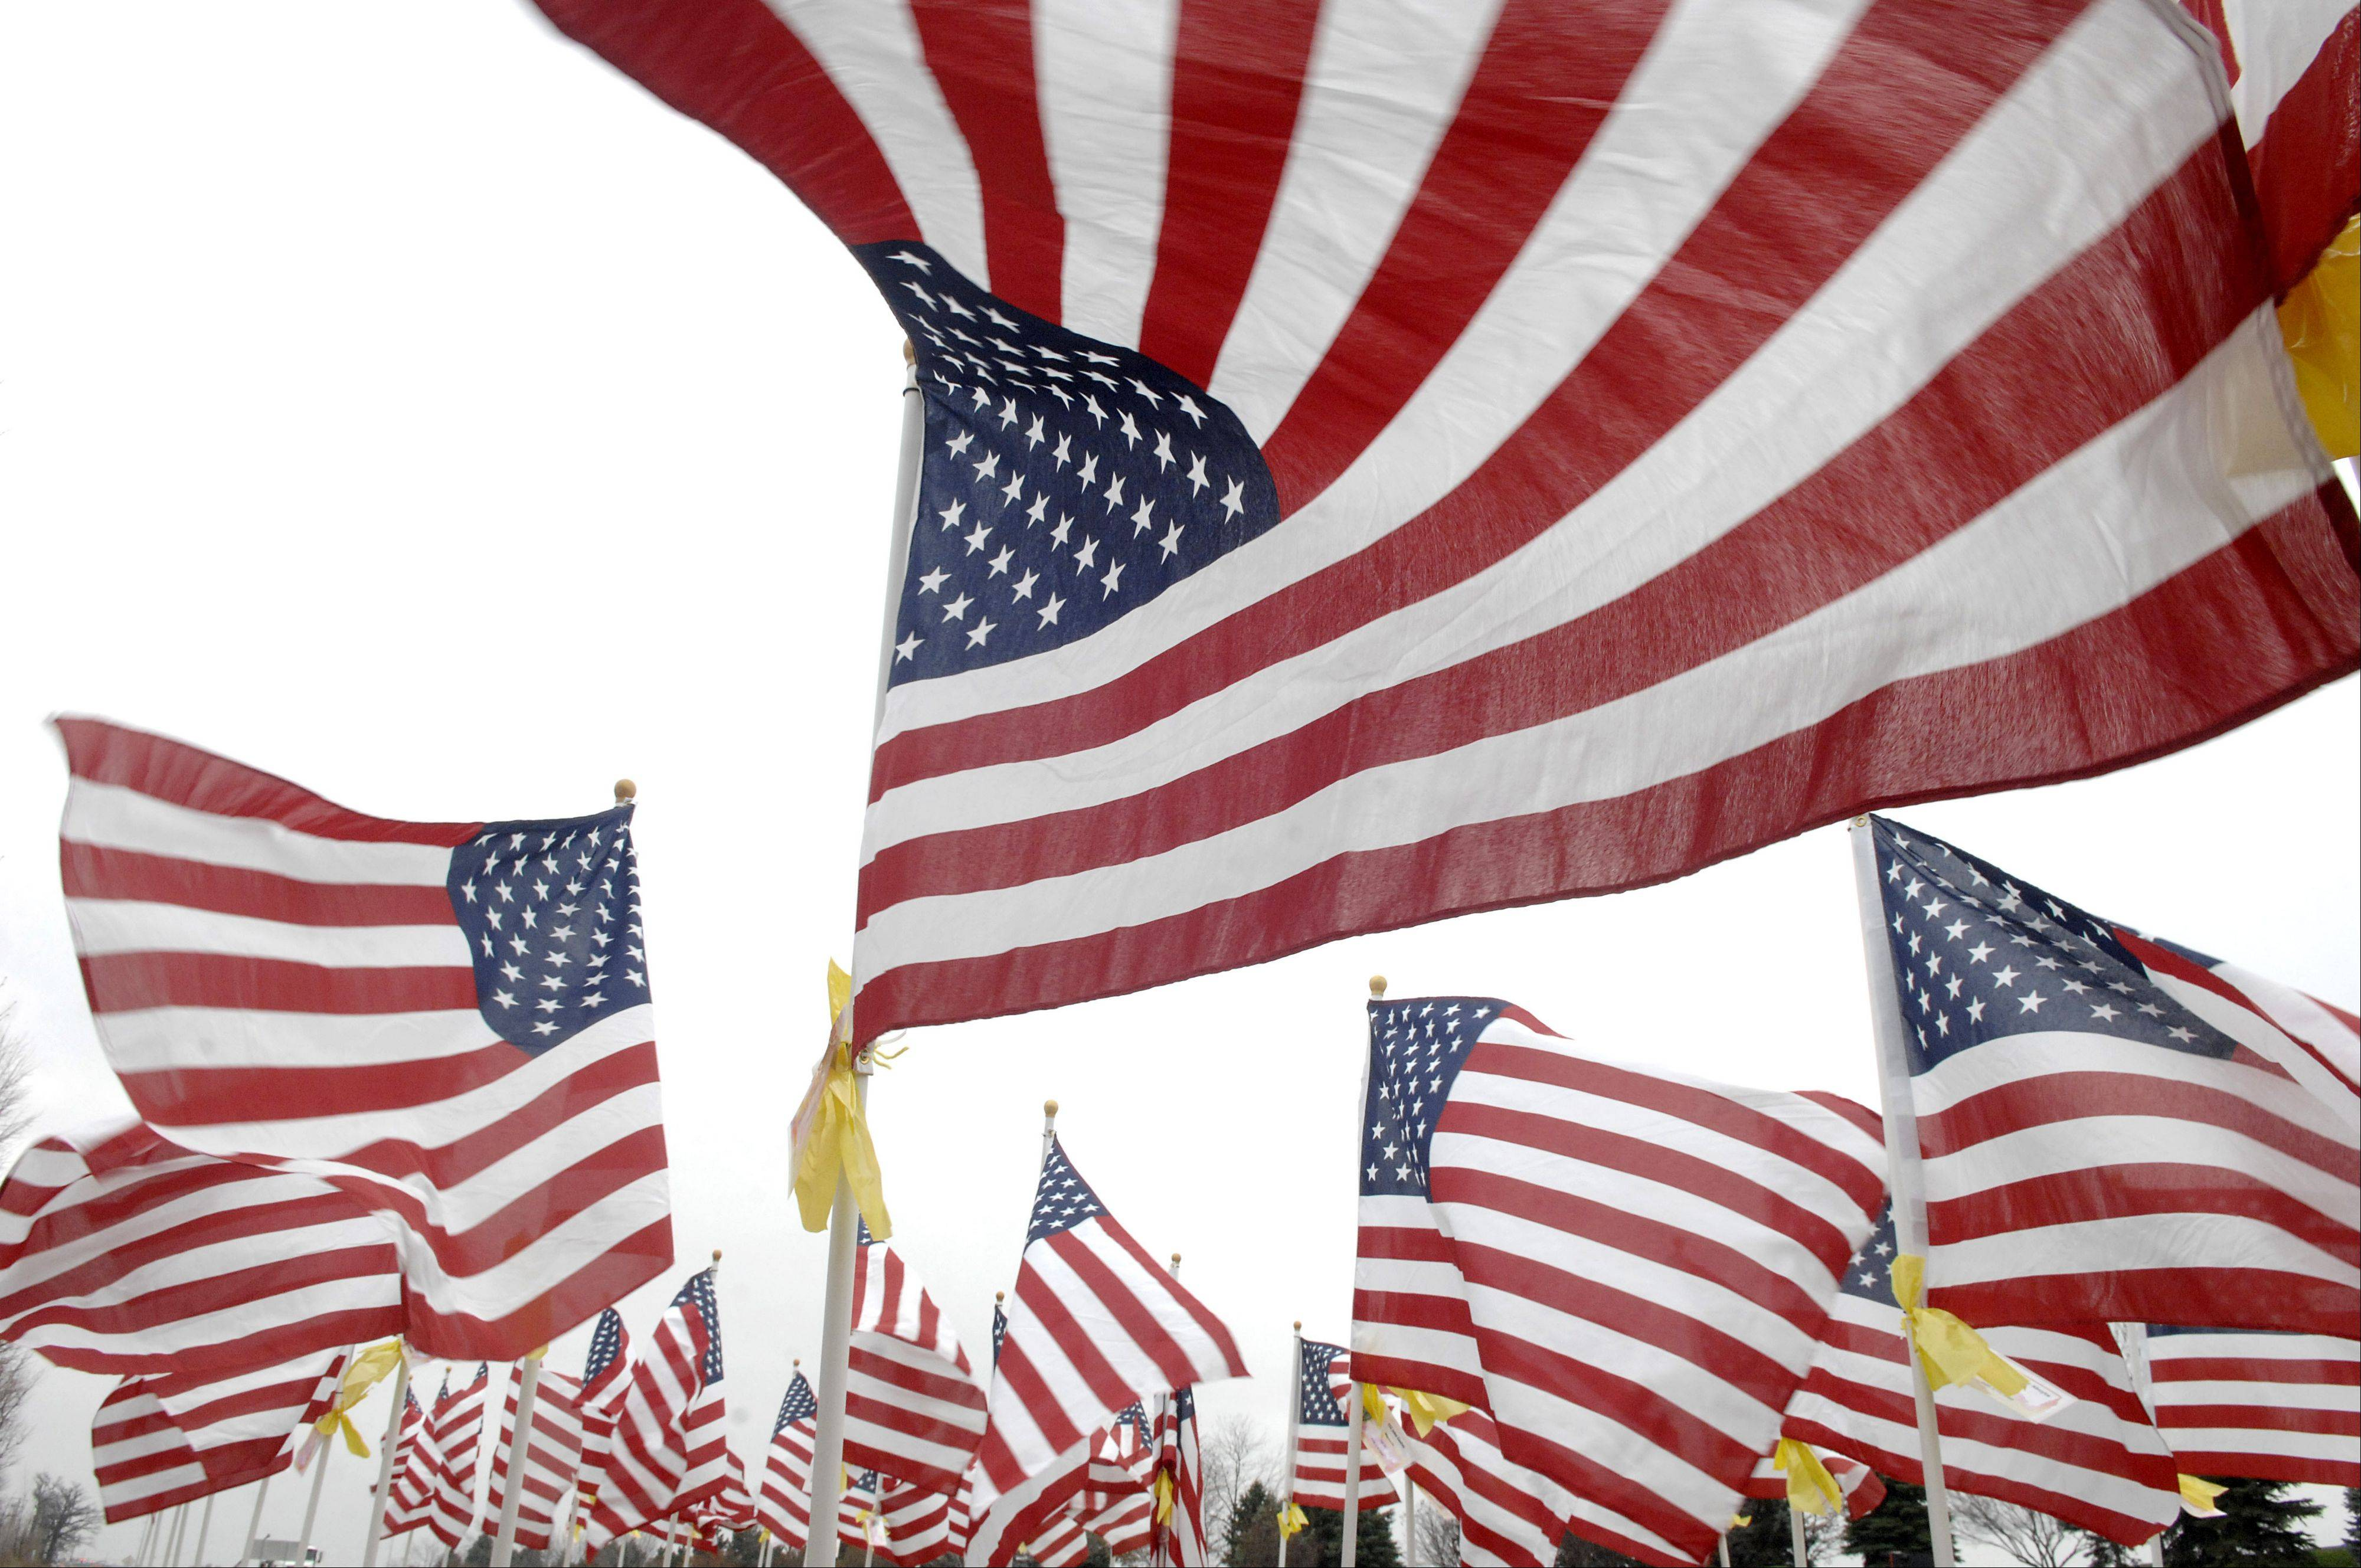 The 323 American flags at Route 47 near Oak Creek Highway in Huntley, represent all of the Illinois soldiers who have been killed since Sept. 11, 2001. The display was put on in conjunction with the True Patriots Care Foundation, which is based in Carpentersville, Culver's restaurant and Drendel's Corner, both in Huntley.